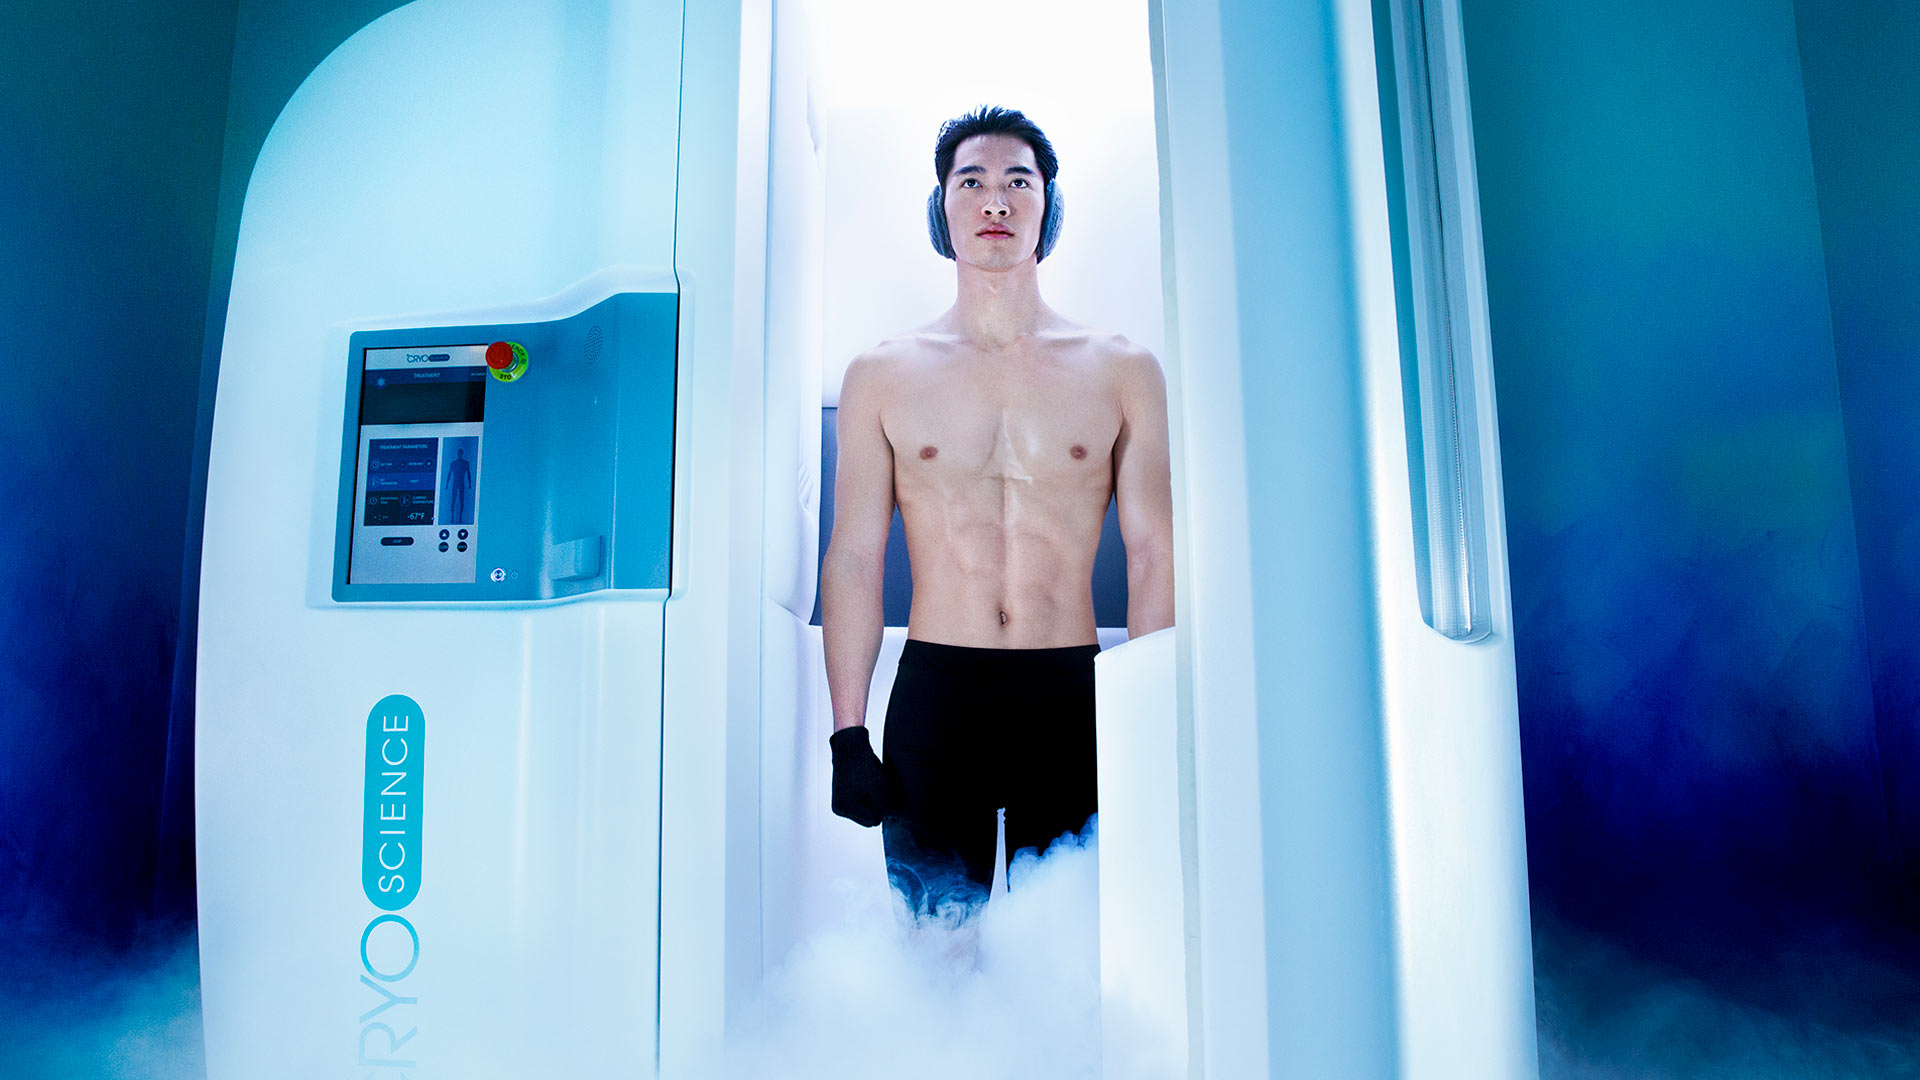 a shirtless man is walking out of a white chamber. The lighting is blue and there is steam coming out of the chamber